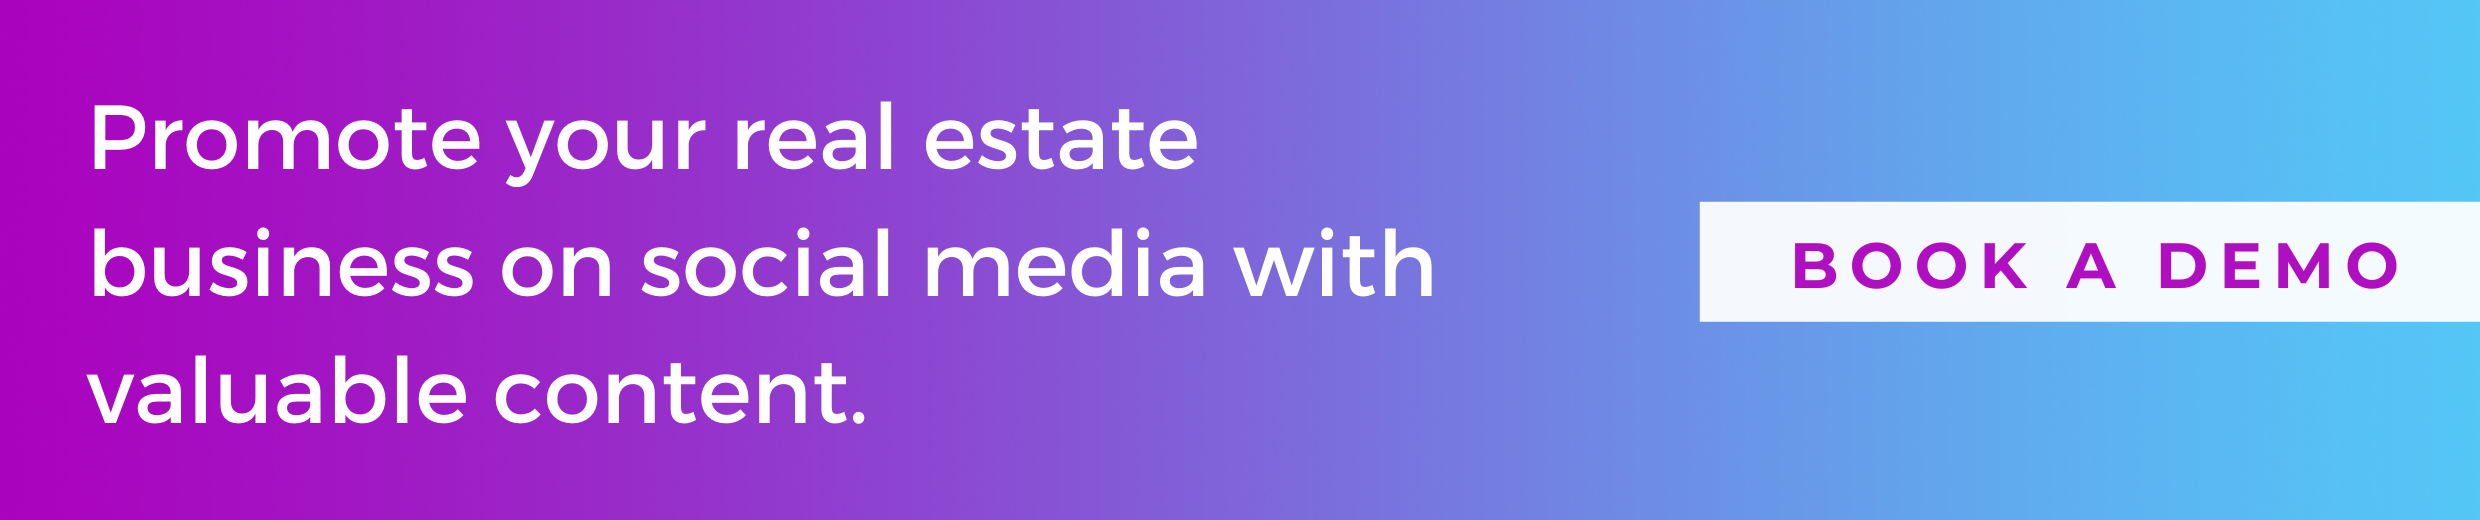 button to get started for fee and promote your real estate business on social media with valuable content